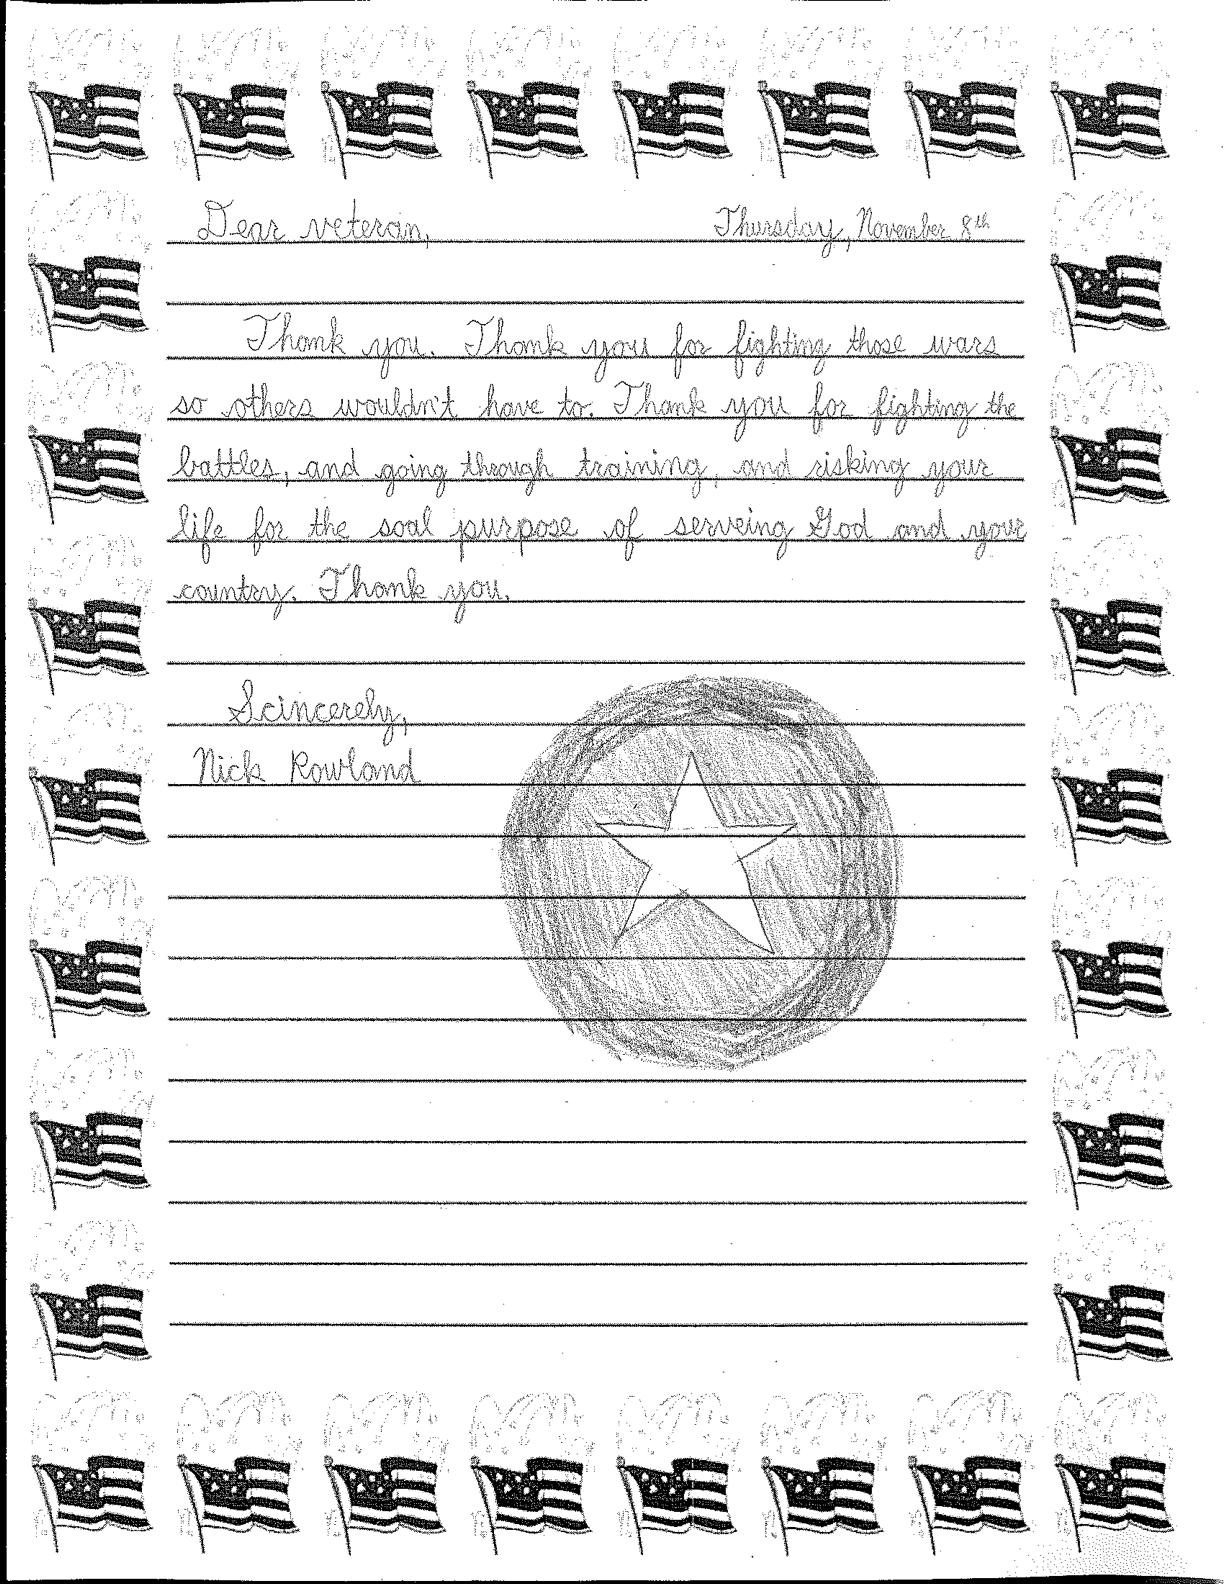 Veterans Day Letter Template - Veterans Day Thank You Letter Image Collections Letter format